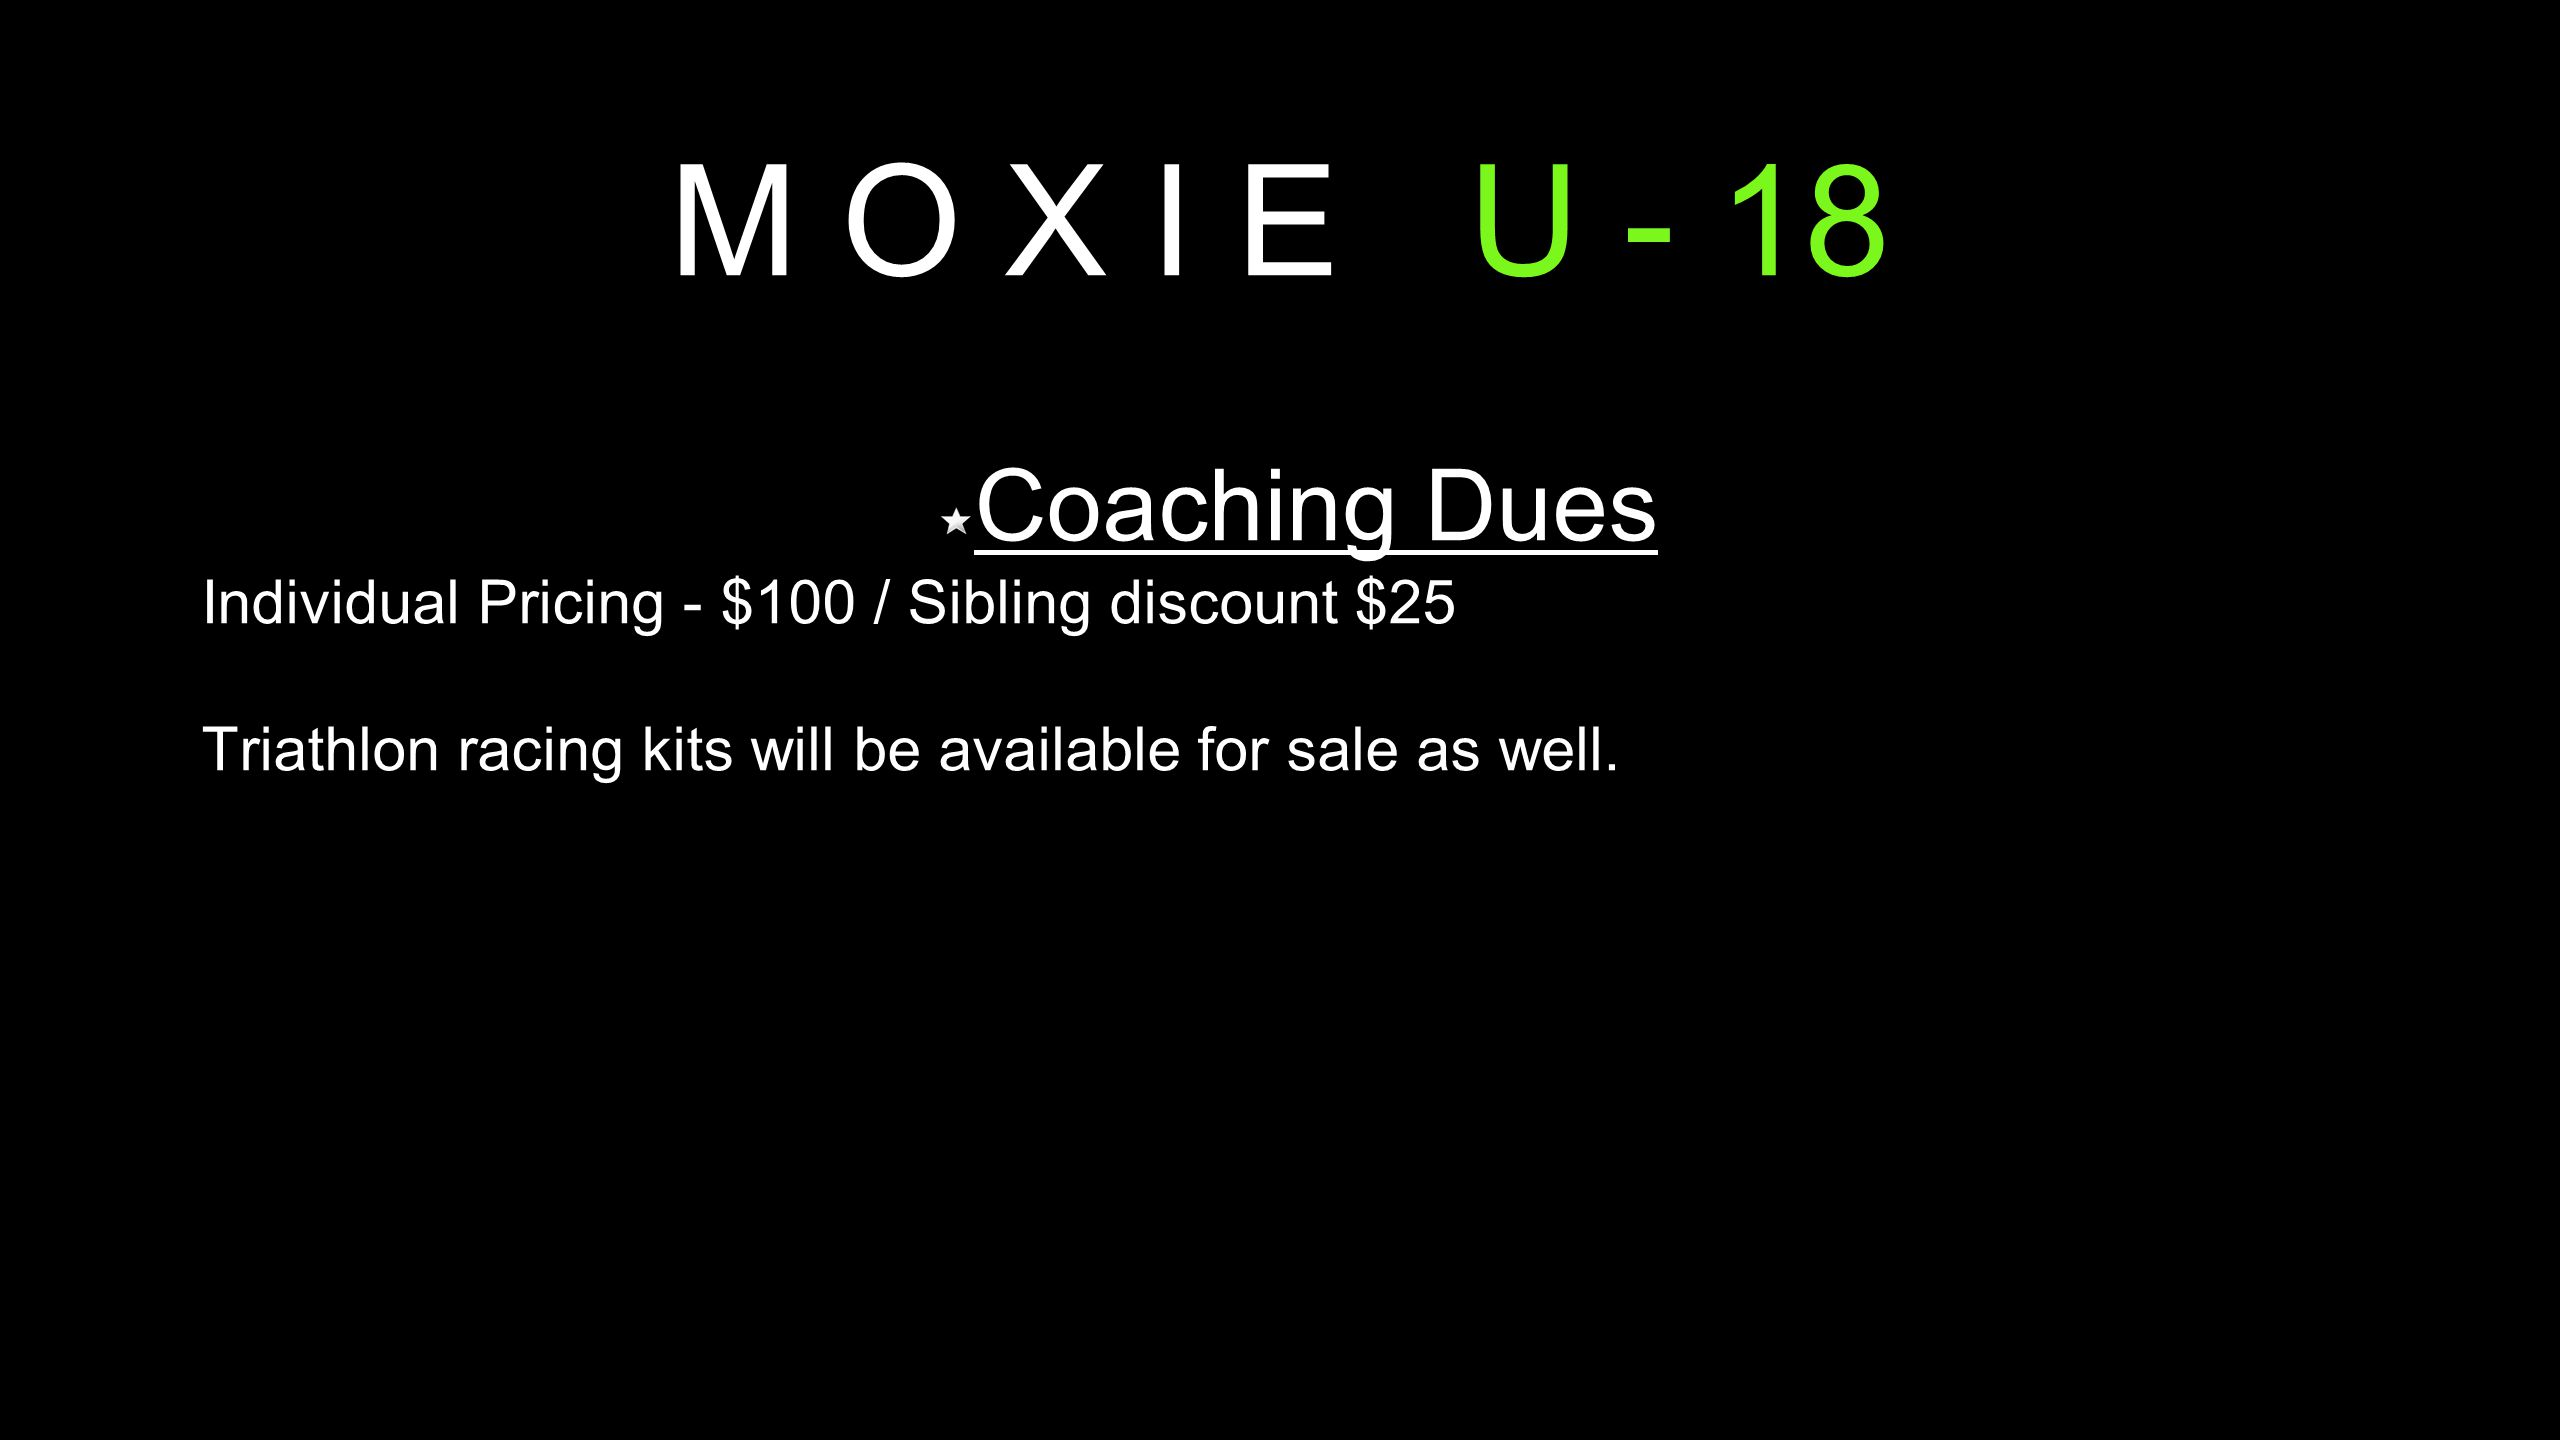 M O X I E U - 18 Coaching Dues Individual Pricing - $100 / Sibling discount $25 Triathlon racing kits will be available for sale as well.